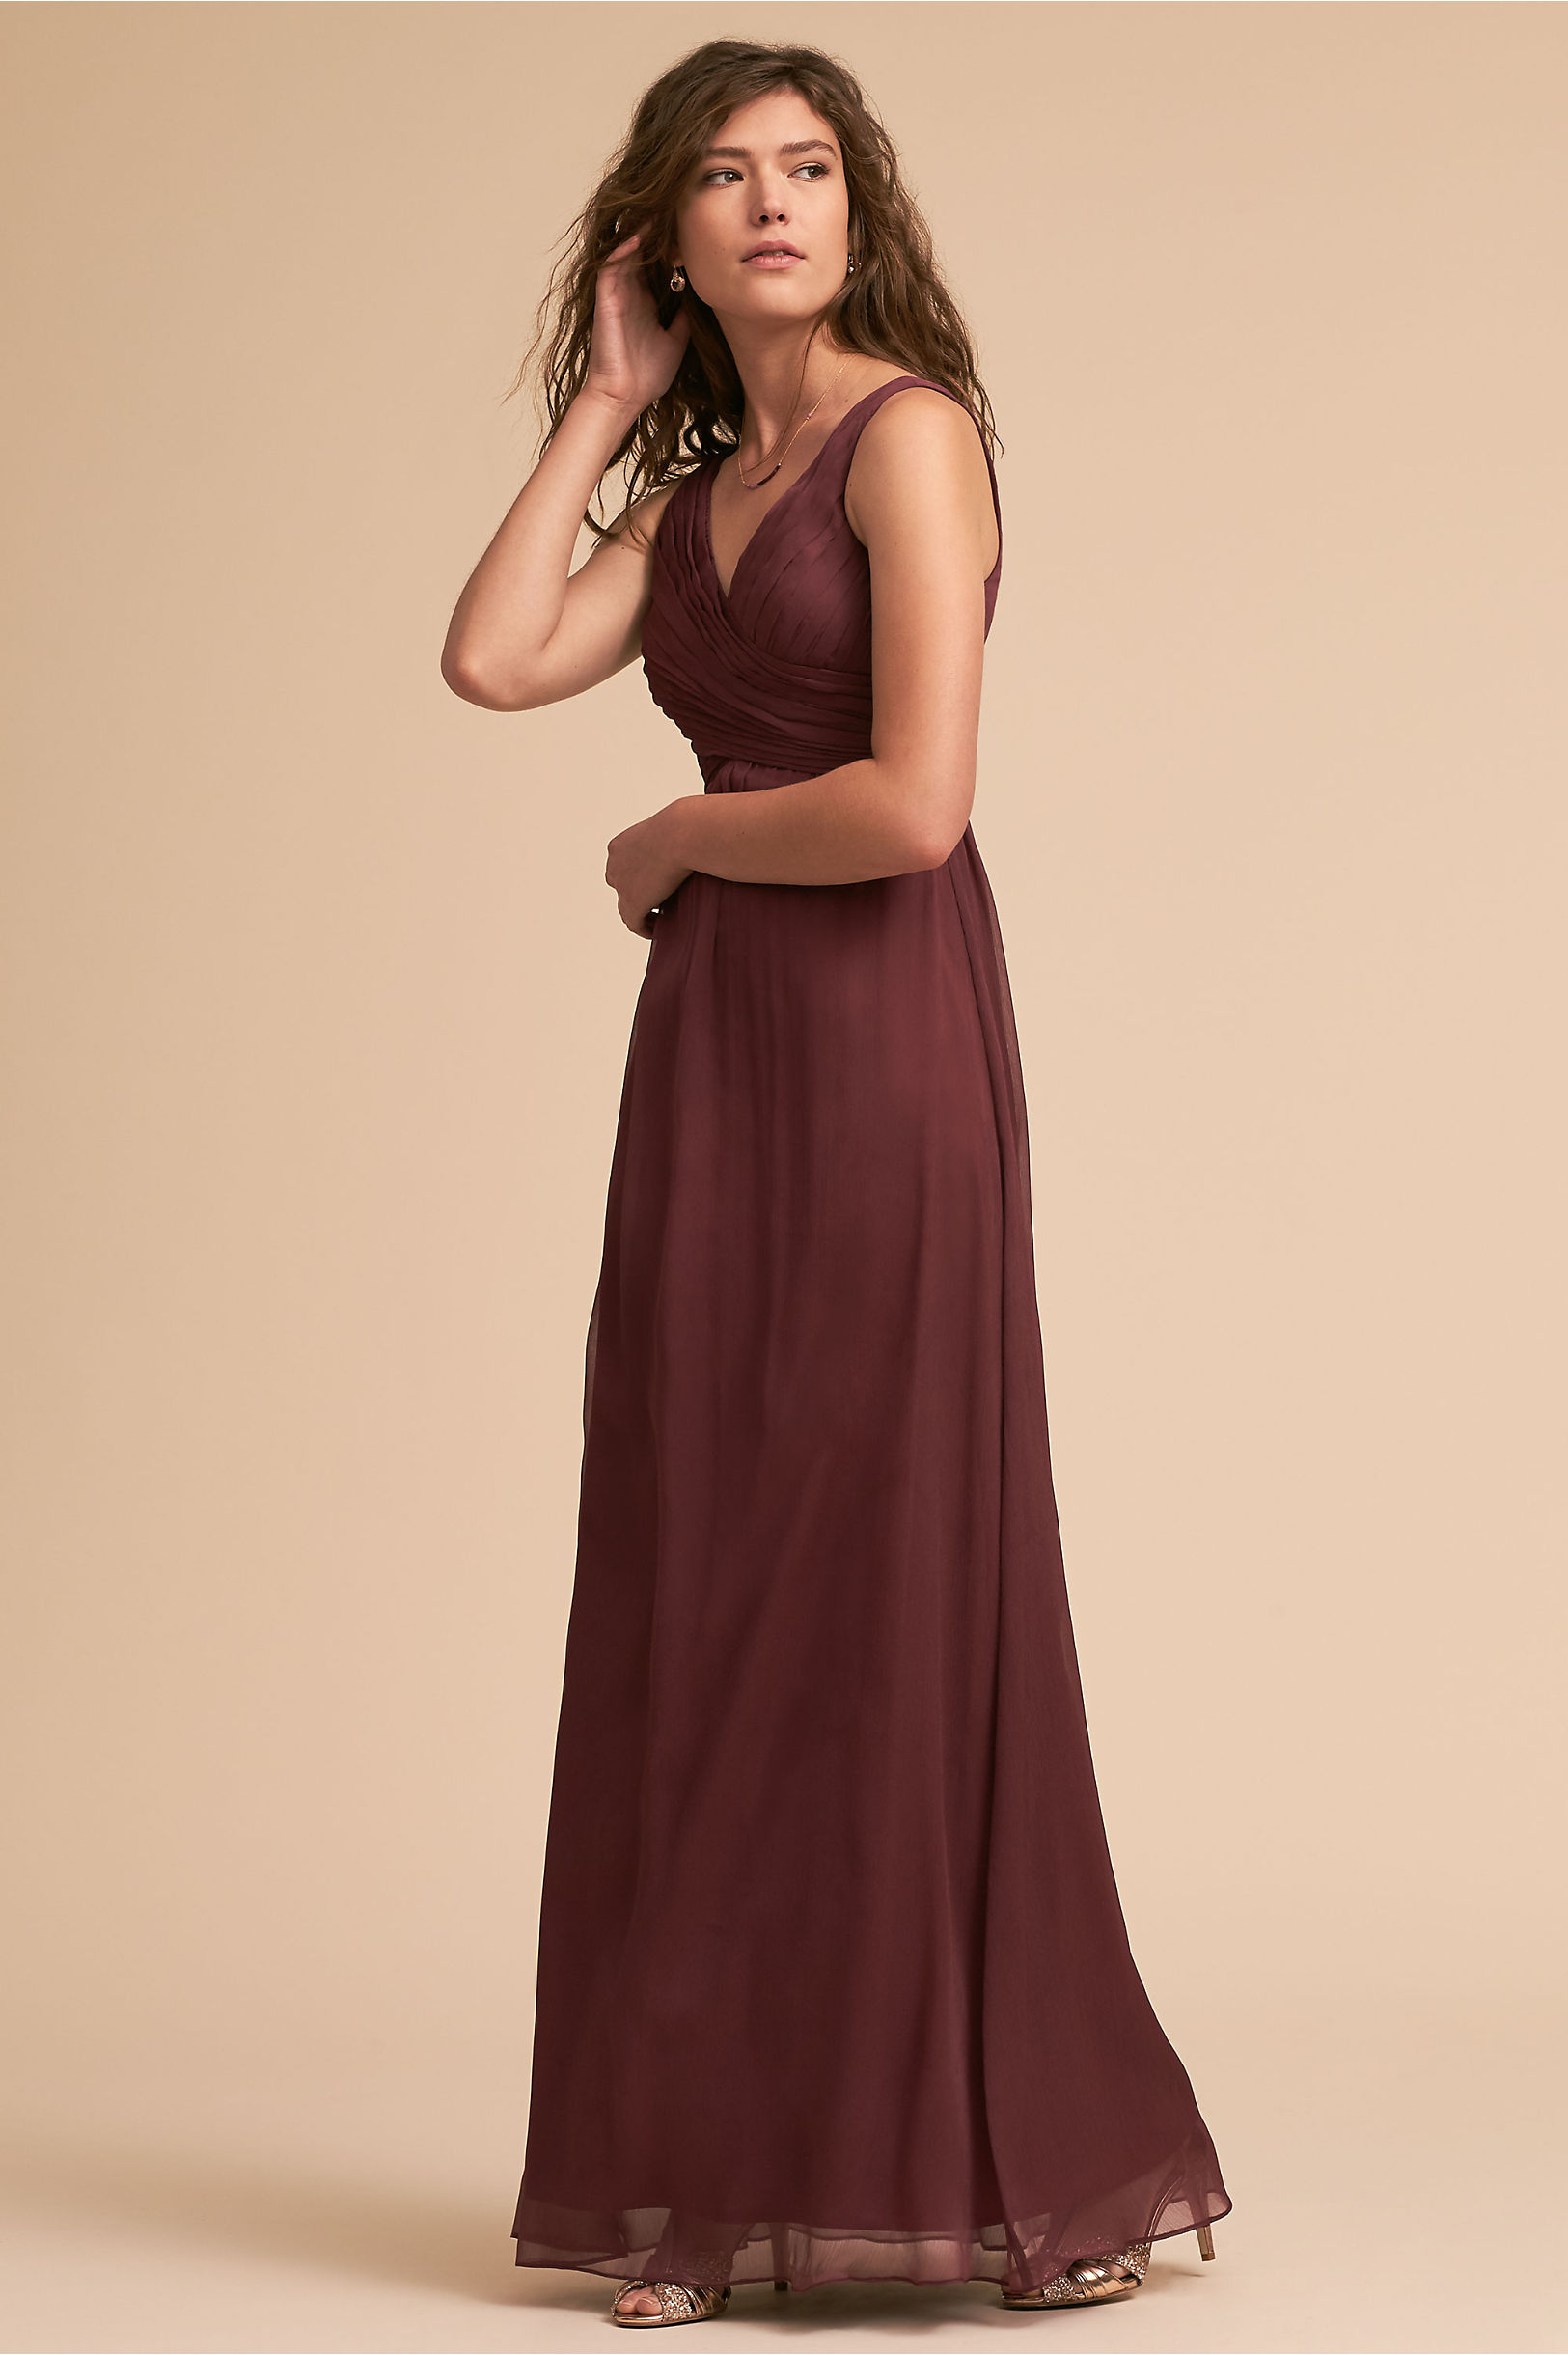 Burgundy red wine colored bridesmaid dresses bhldn angie dress ombrellifo Choice Image